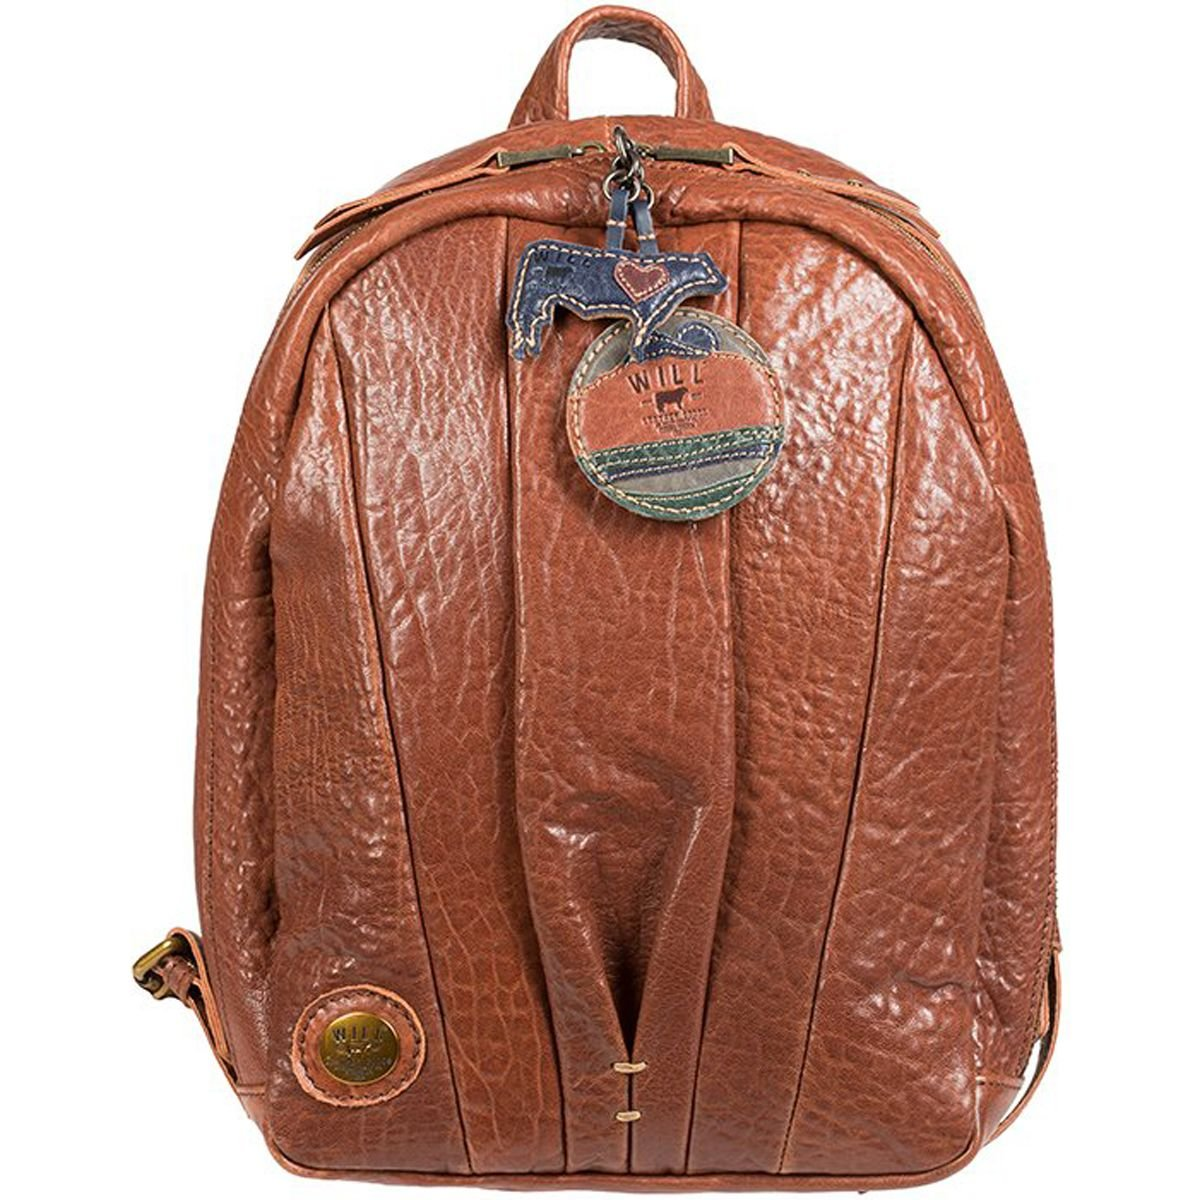 Will Leather Goods Her Backpack - Women's Cognac, One Size